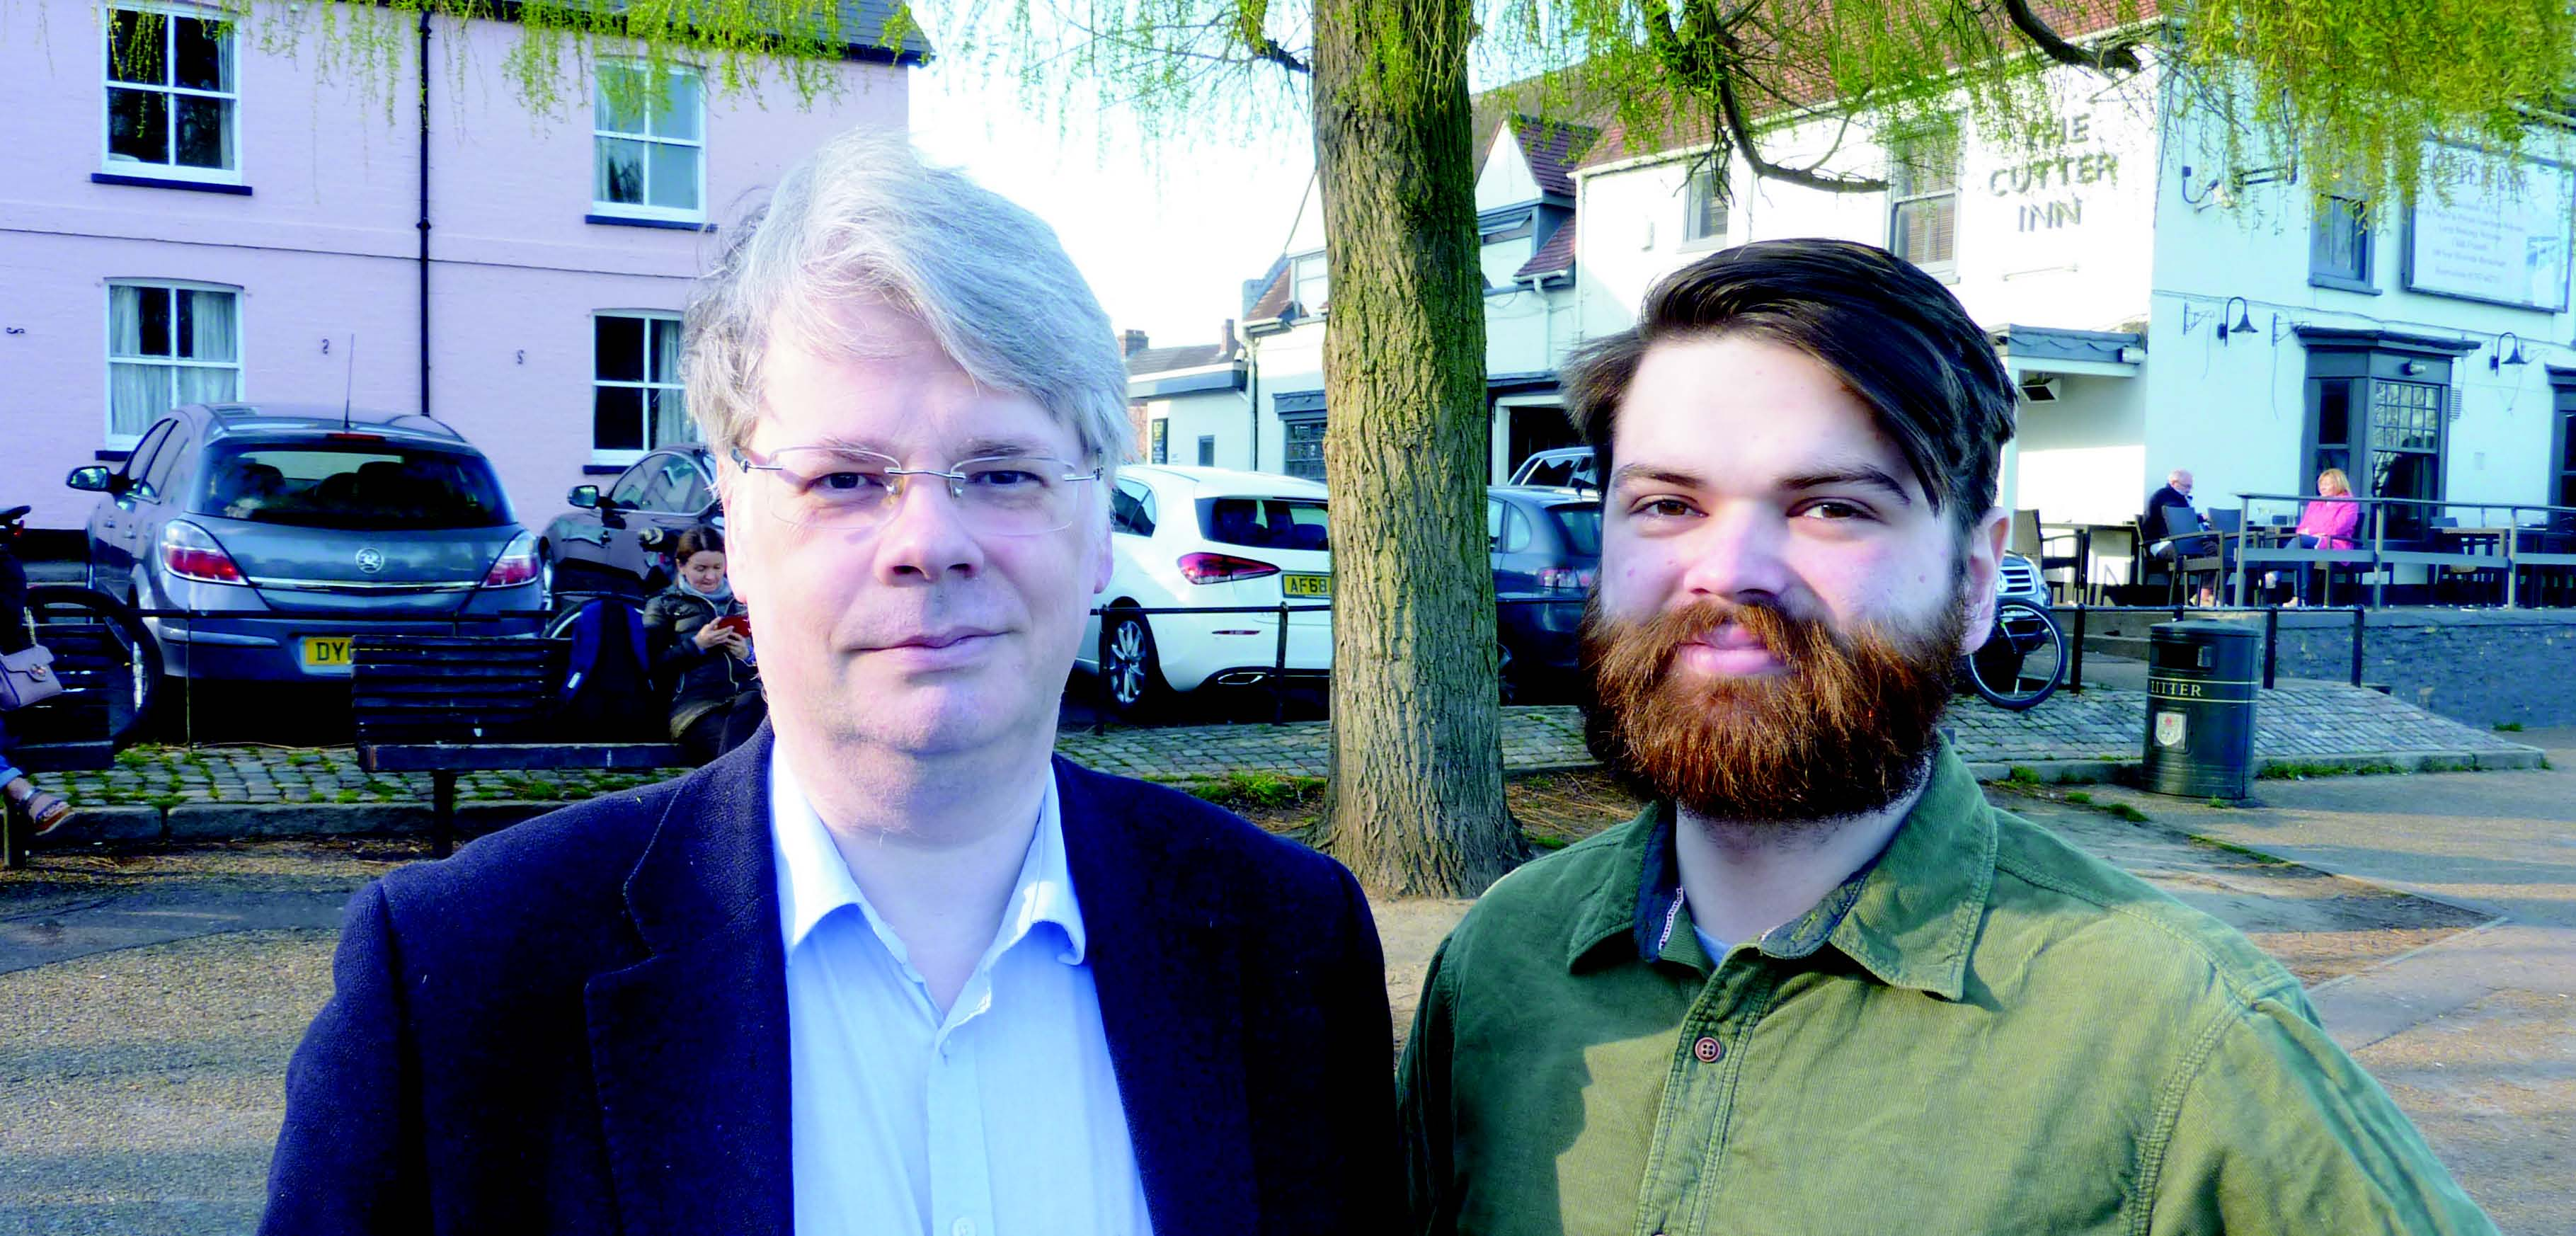 Matt Downey and Kevin Wilkins Candidates for Ely East